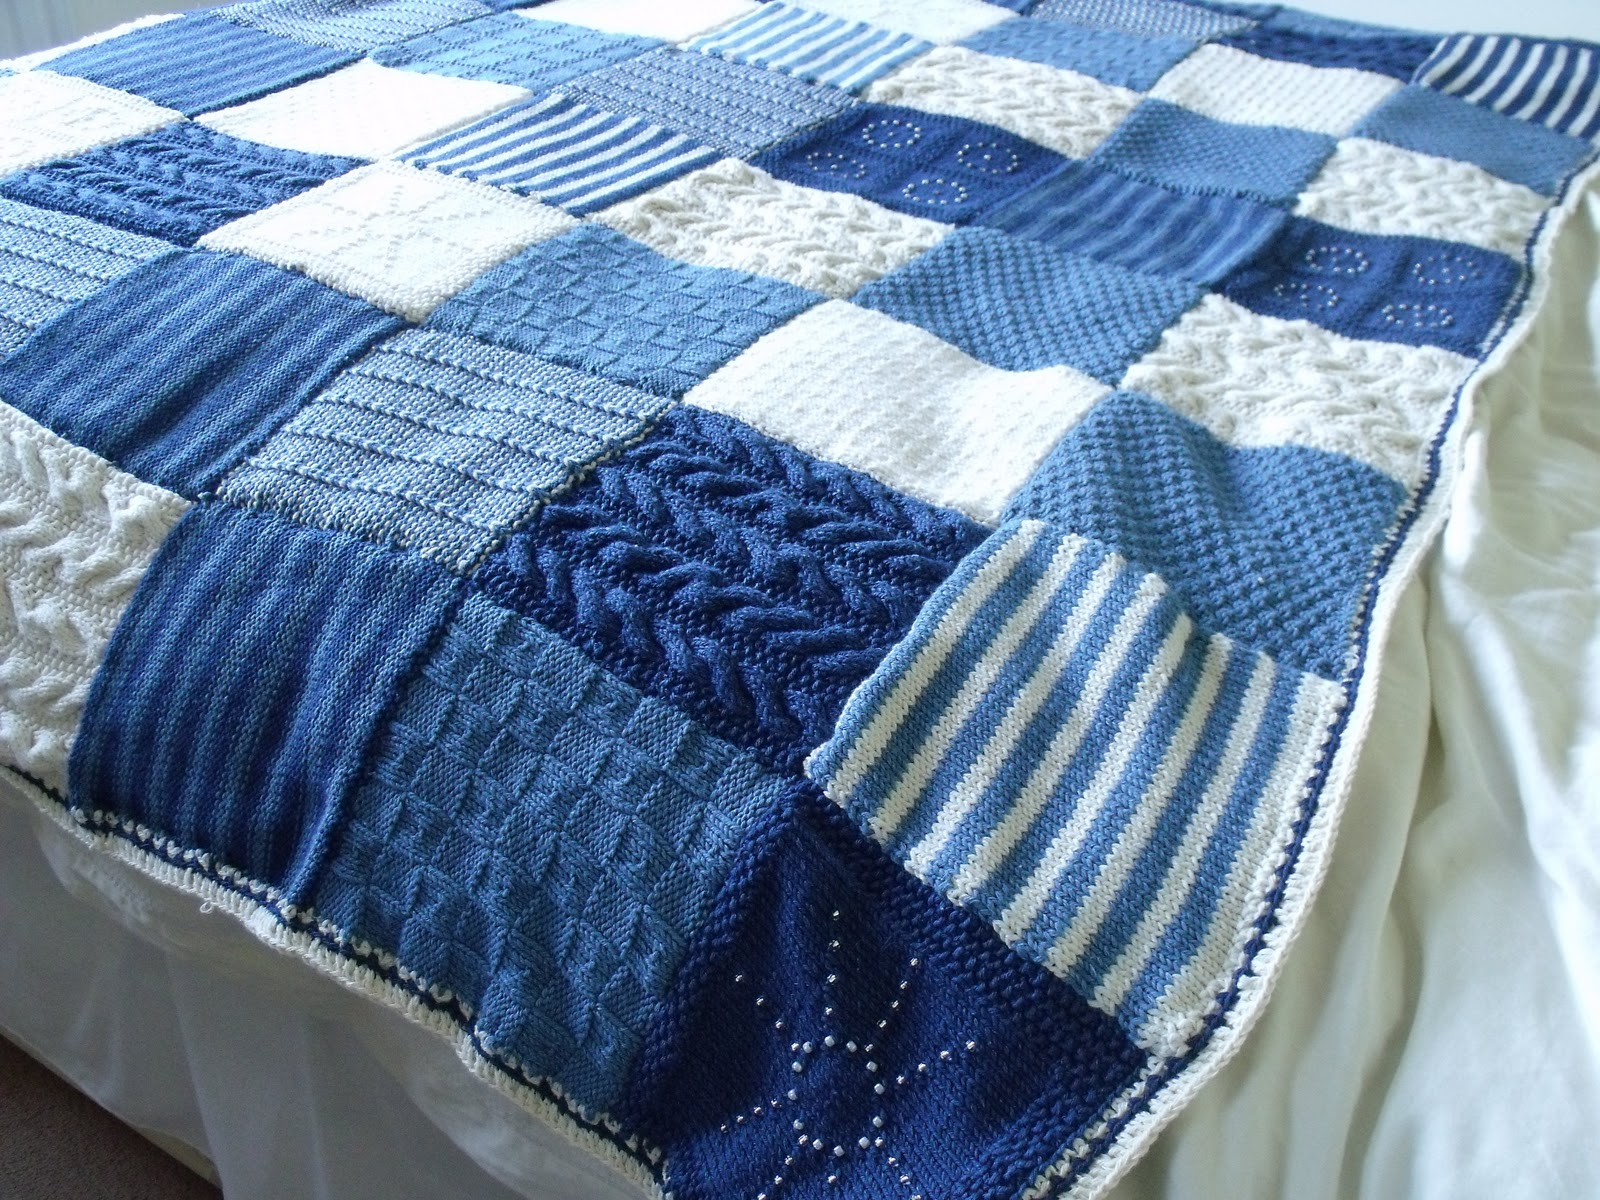 Knitting Patterns Blankets Patchwork : Knit It, Grow It, Cook It: Knitted blanket finished.